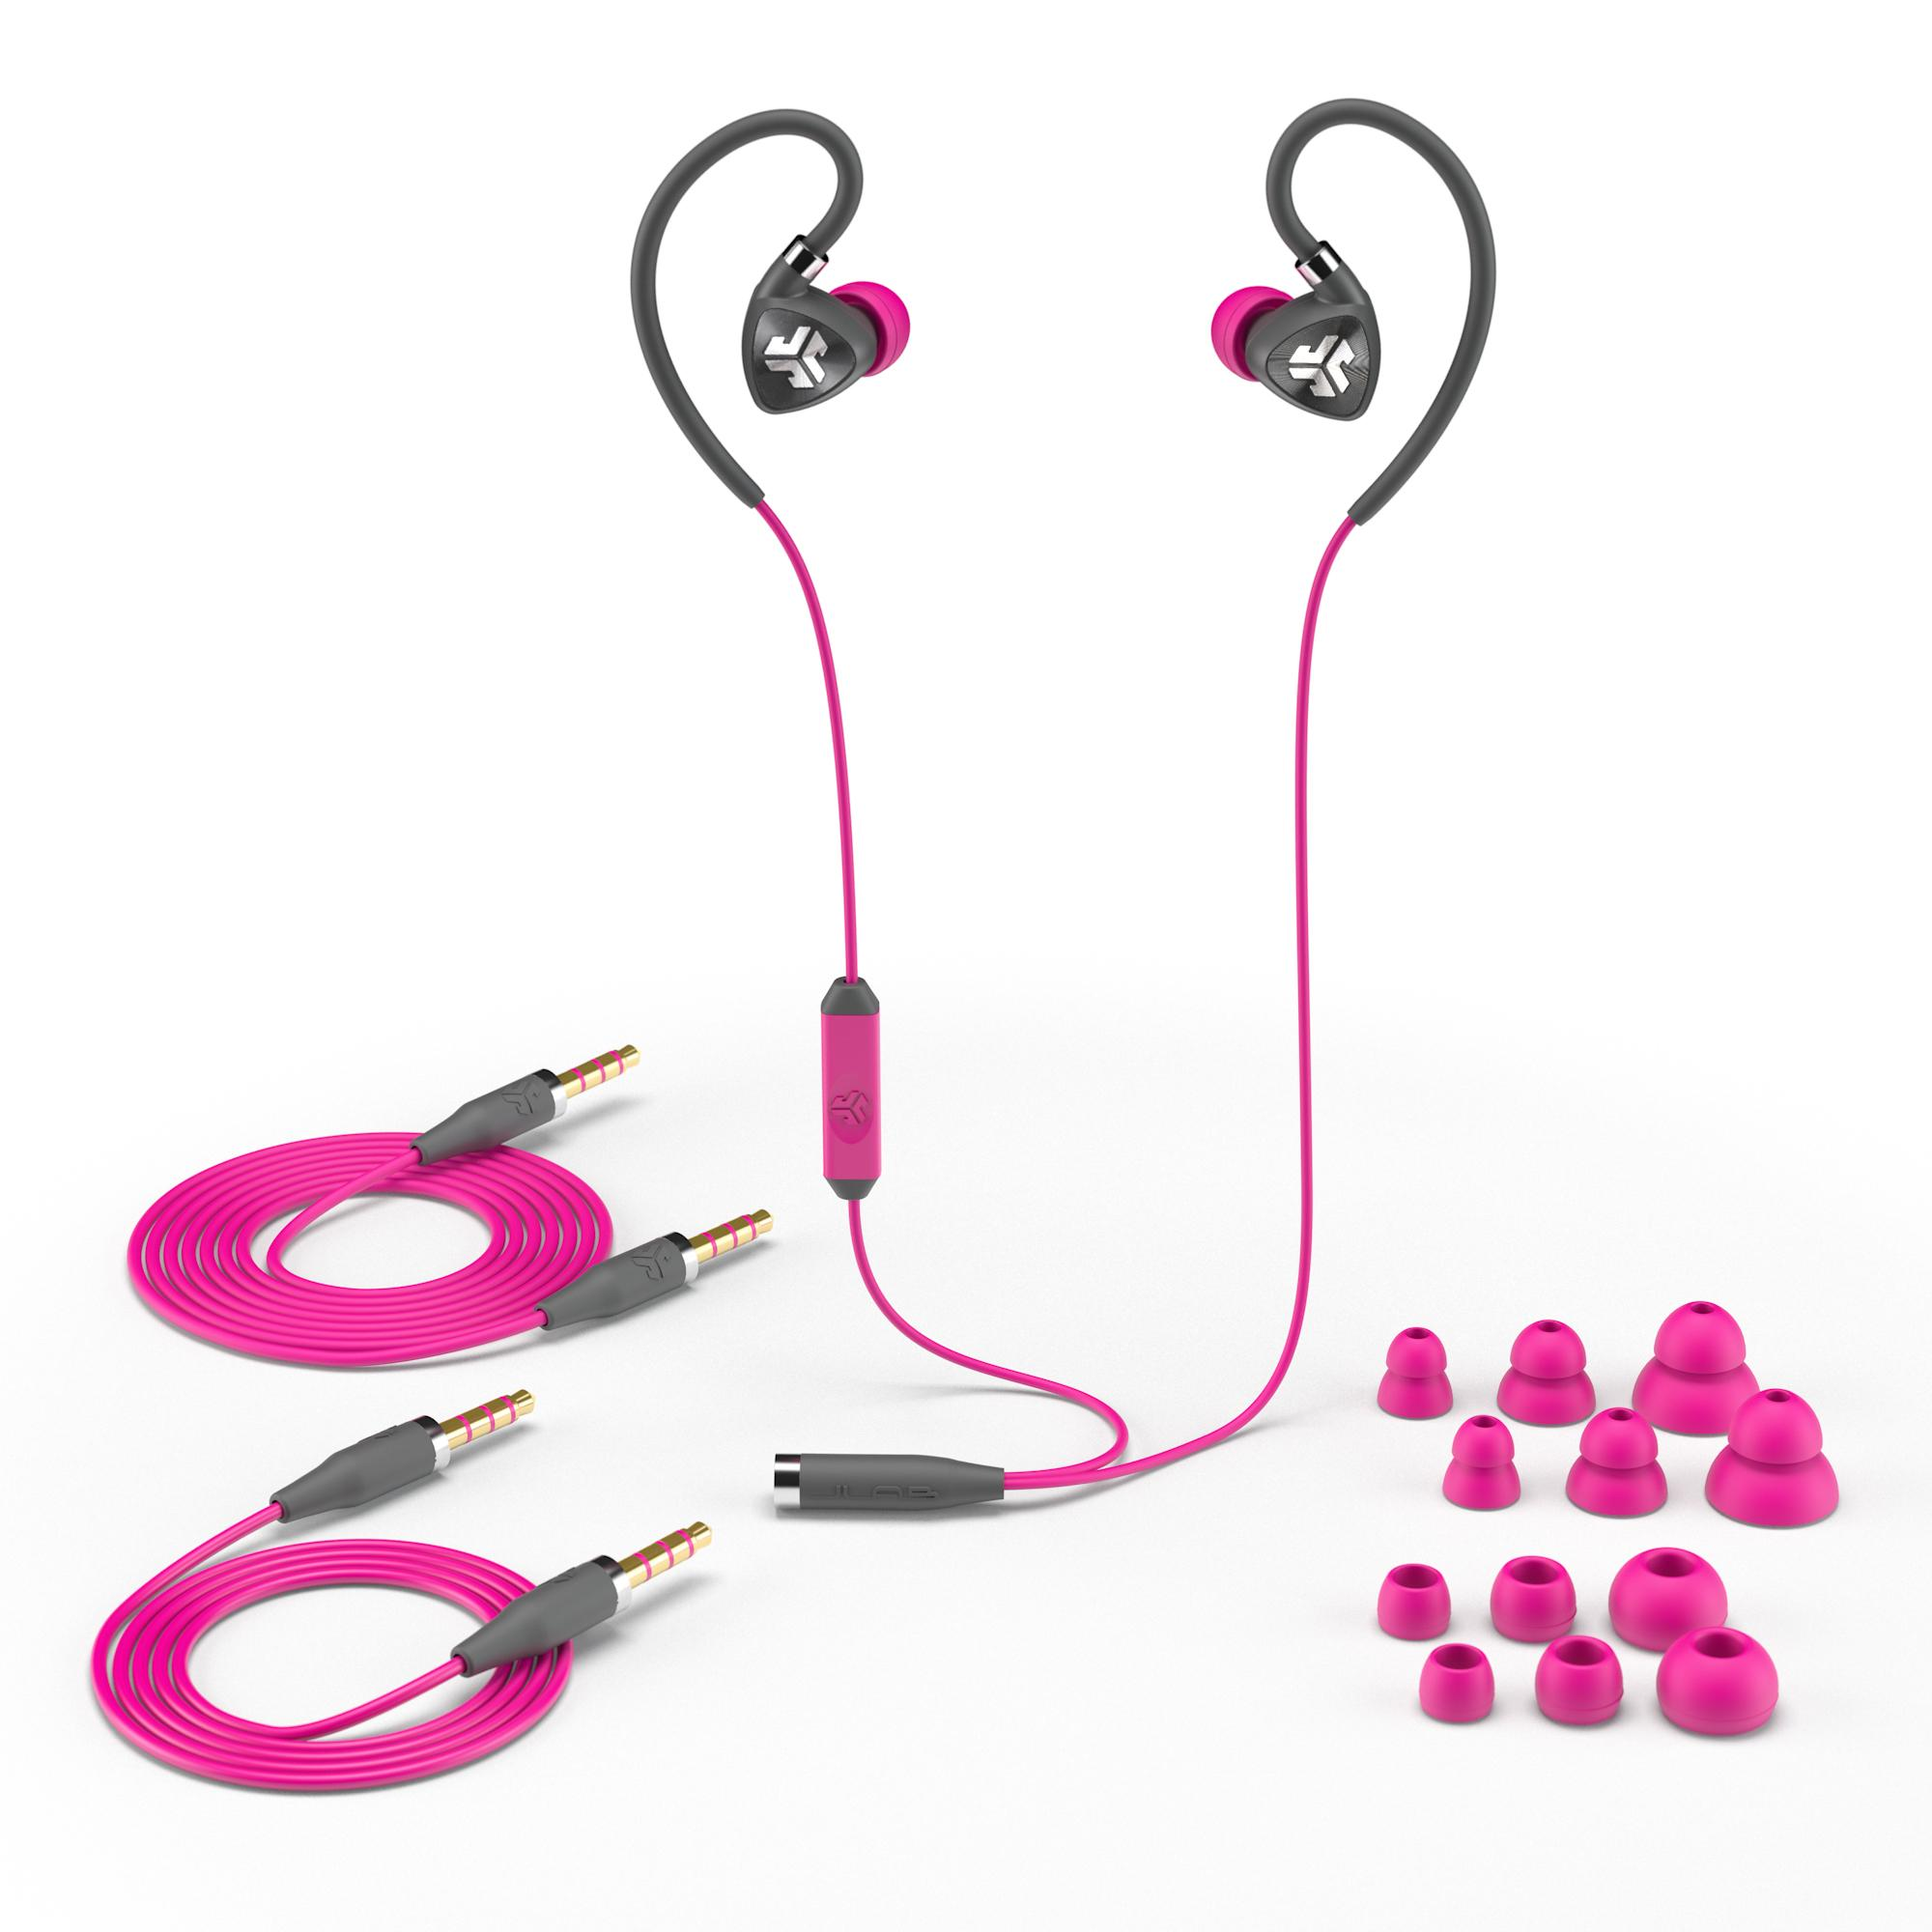 jlab audio fit2 sport earbuds sweatproof water resistant with in wire customizable. Black Bedroom Furniture Sets. Home Design Ideas